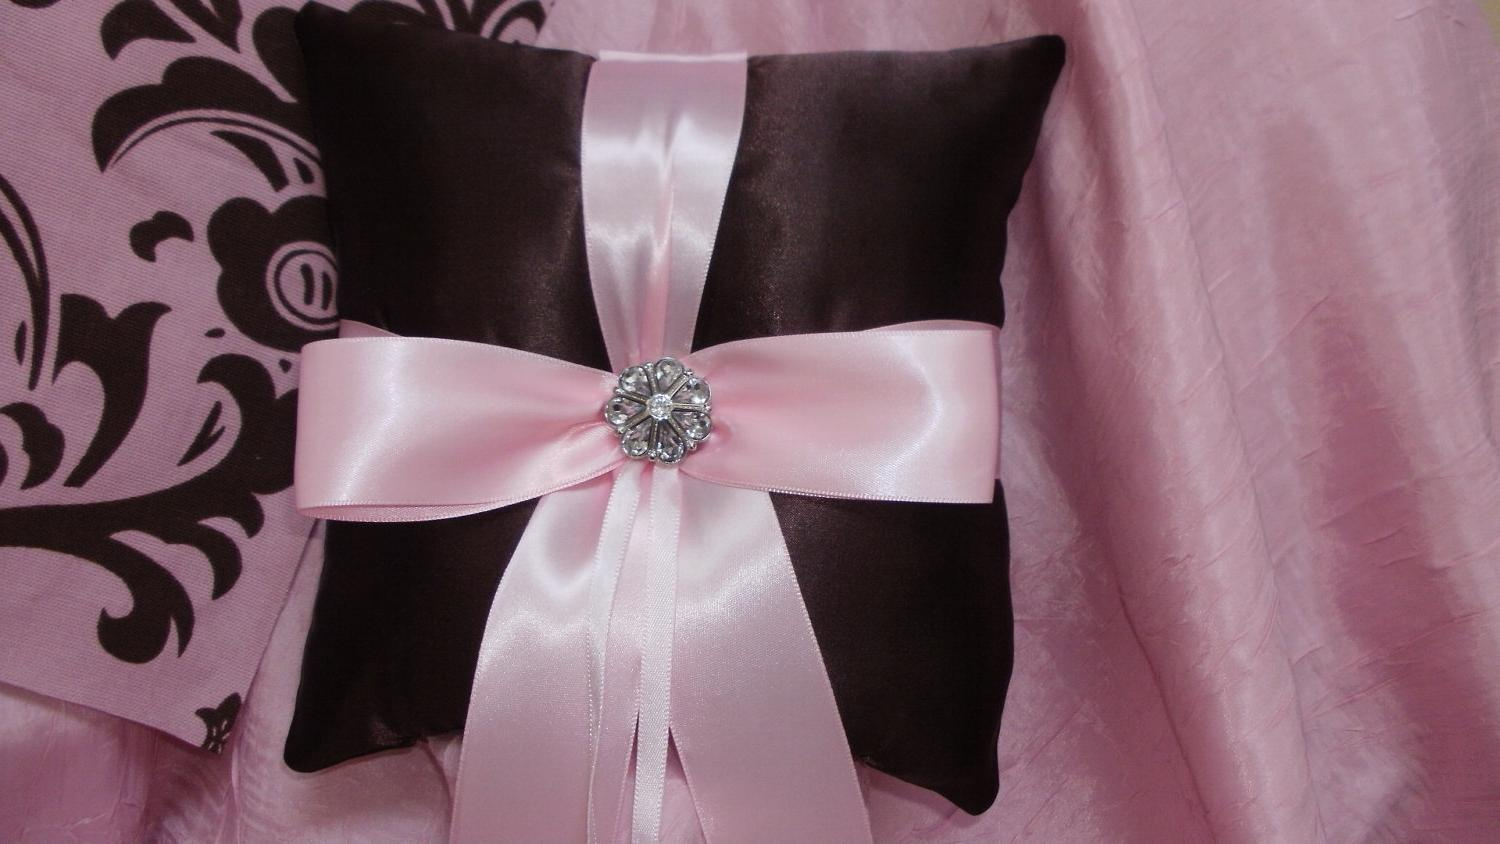 RING PILLOW CHOCOLATE Brown